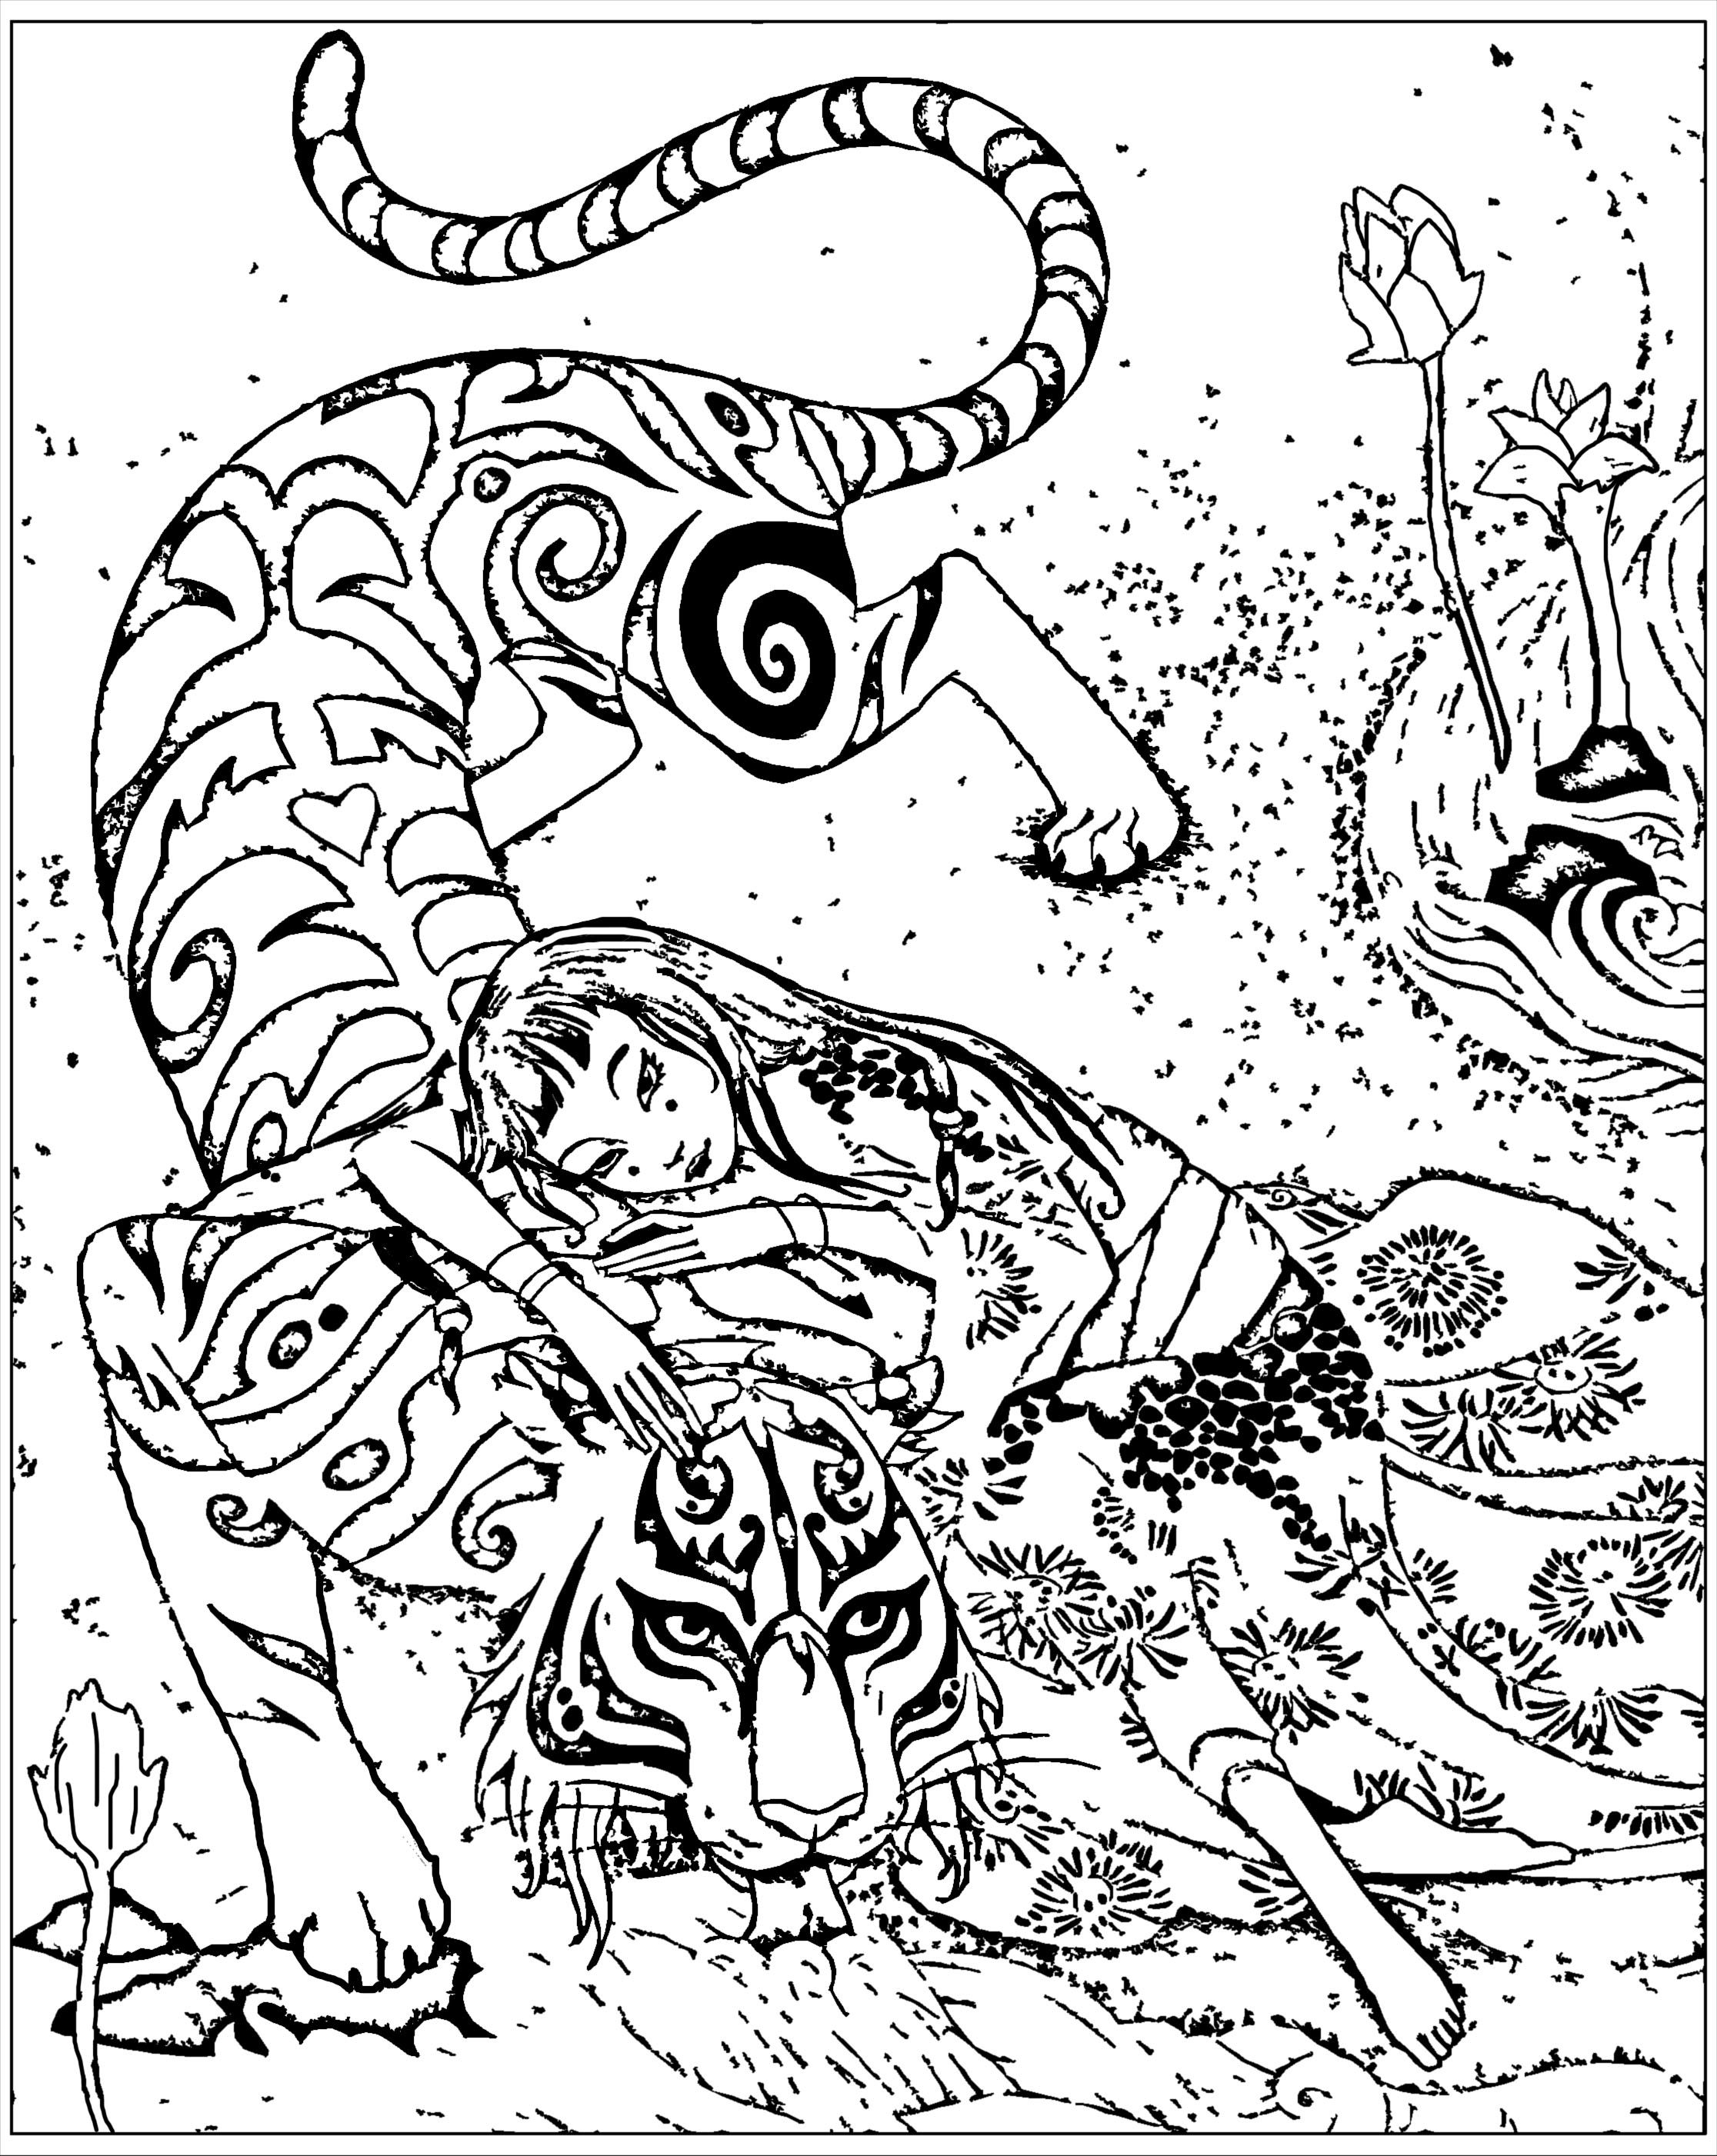 free coloring page coloring adult inspired by book tiger devoted - Coloring Pages Tigers Print